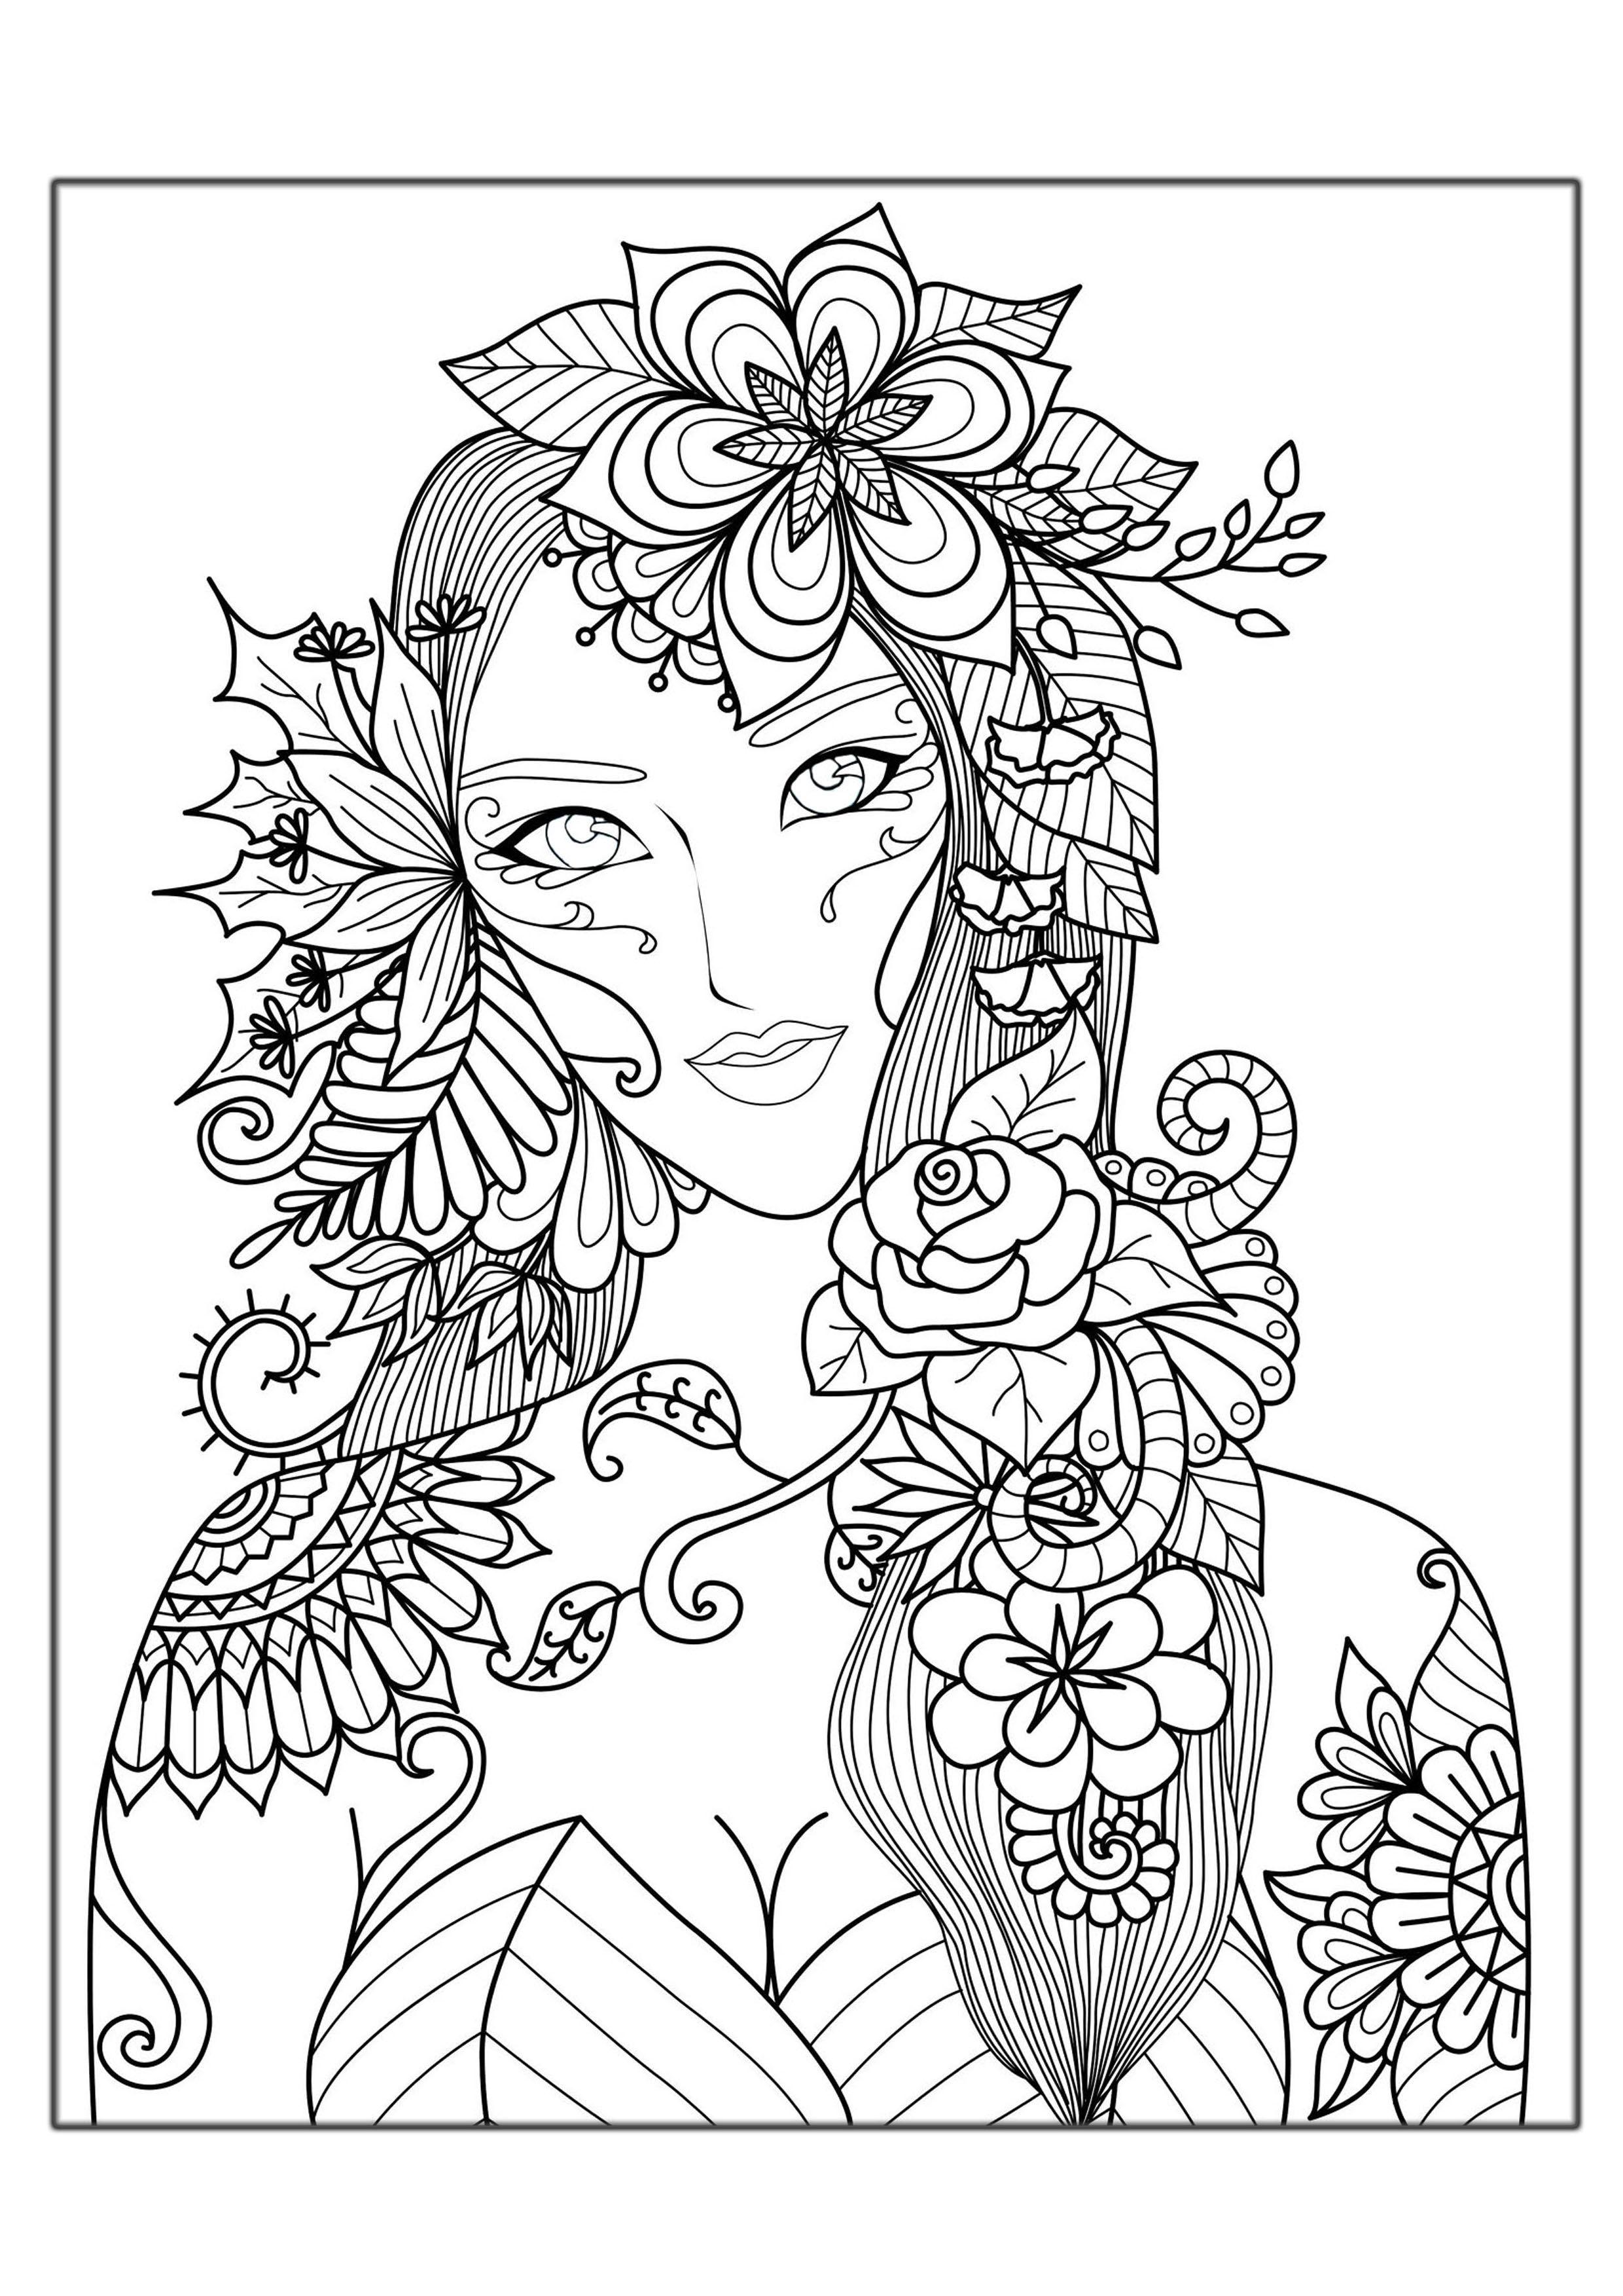 Coloring pages 6 days of creation - From The Gallery Zen Anti Stress Artist Bimdeedee Crafting Creation